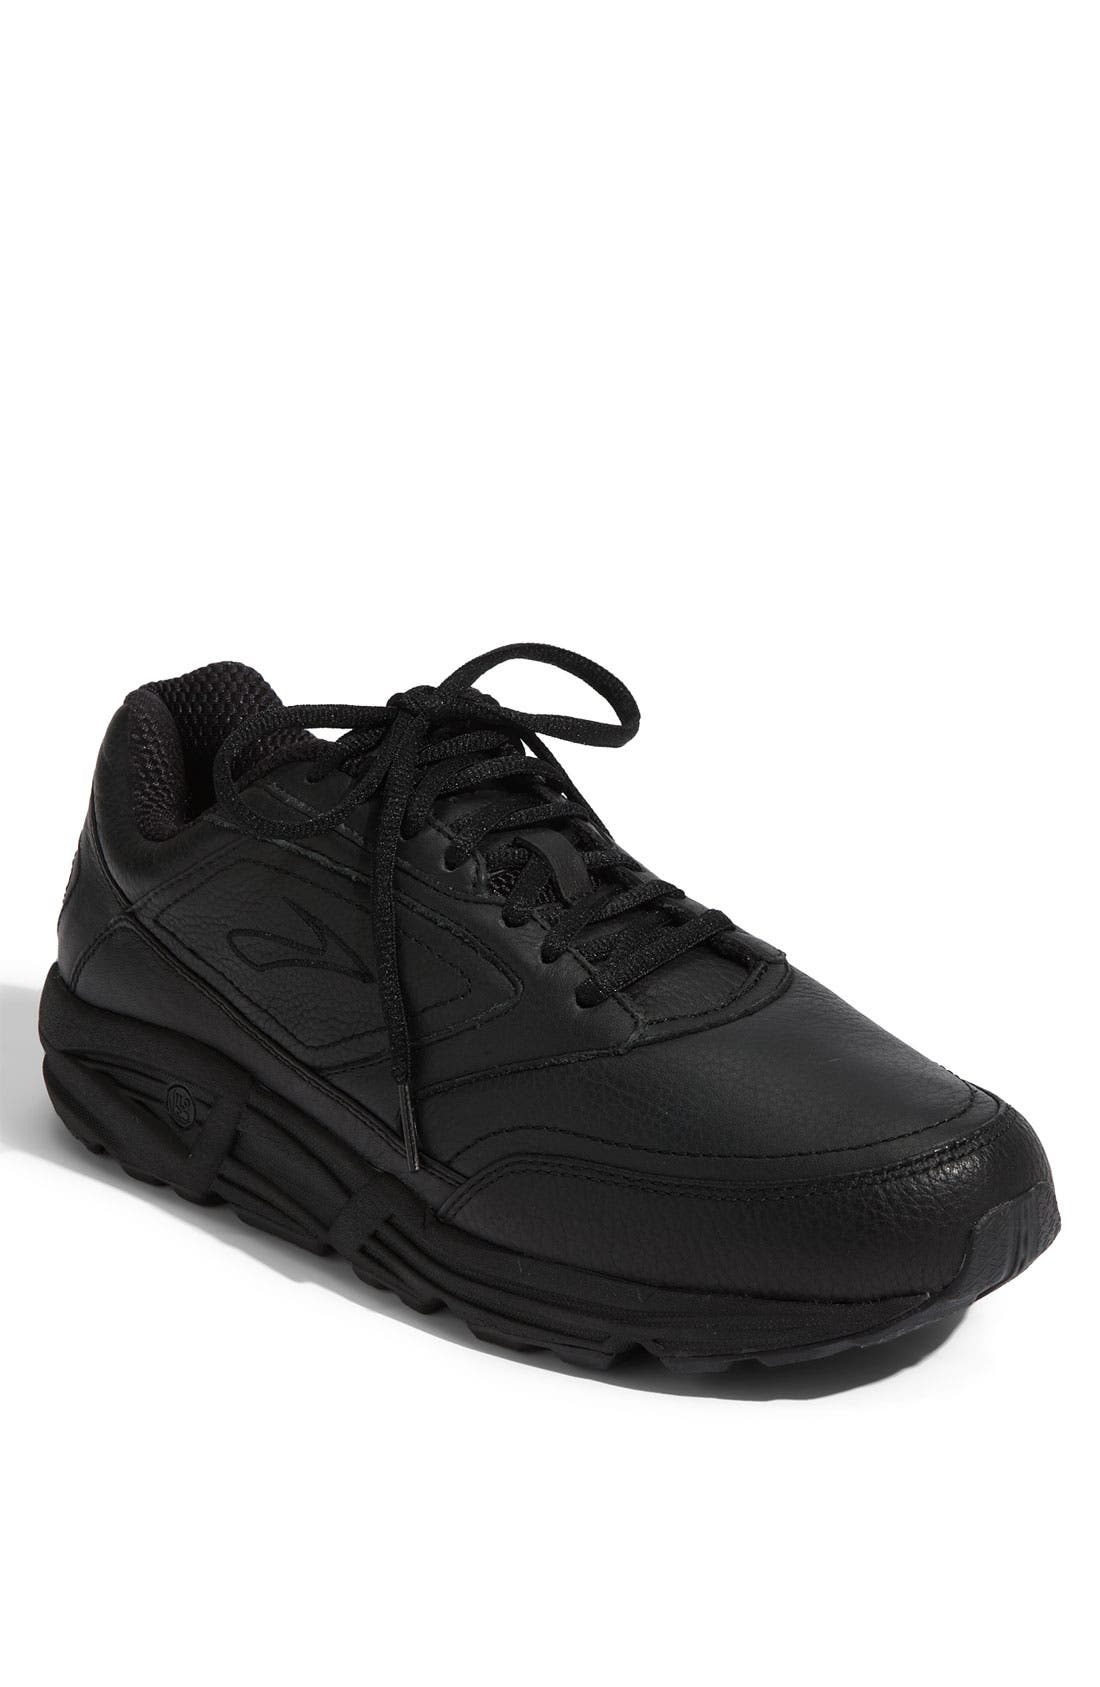 Alternate Image 1 Selected - Brooks 'Addiction' Walking Shoe (Men)